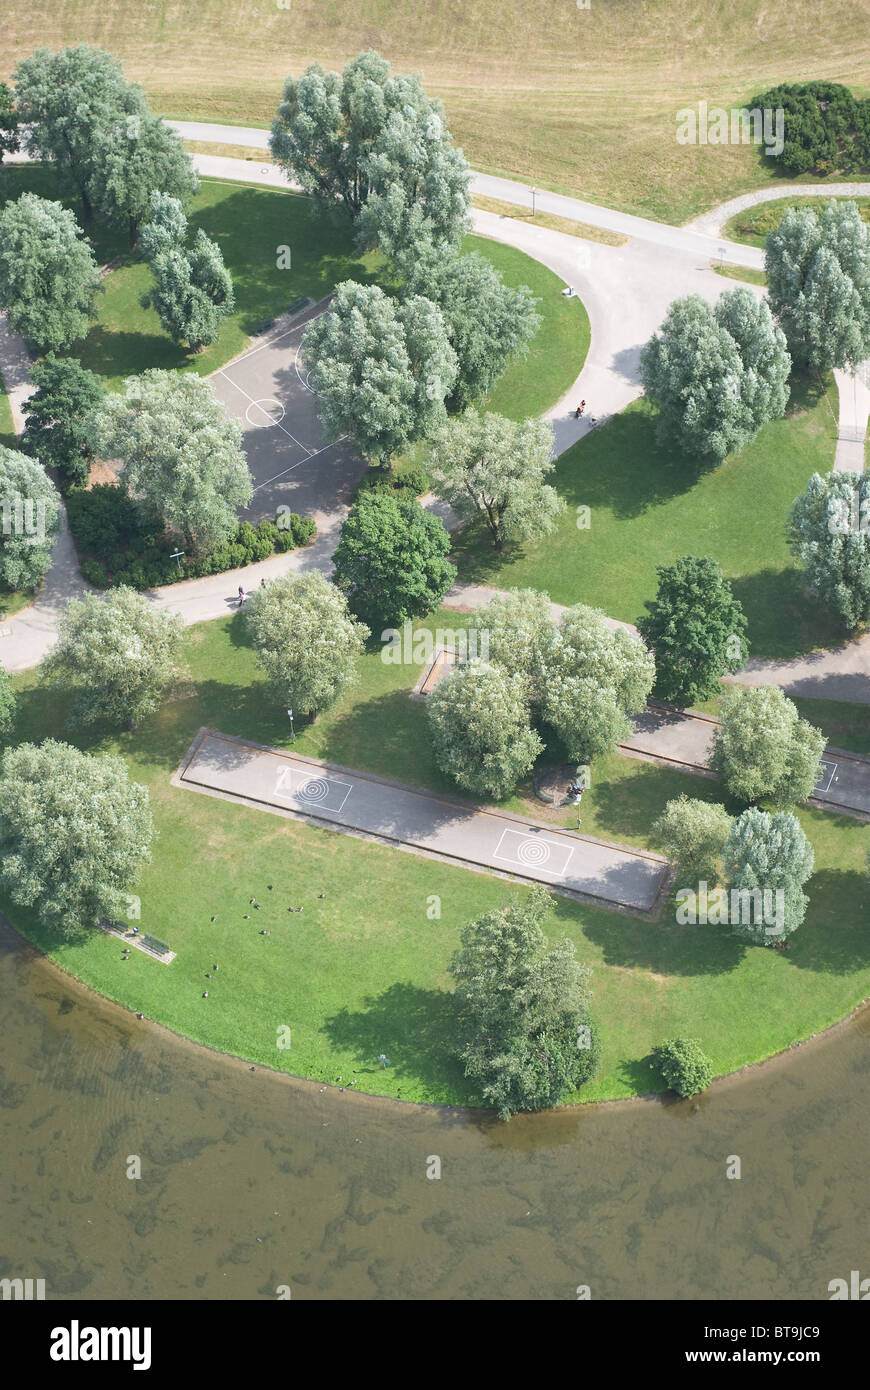 Aerial View of Recreational Park as Symbol of Urban Planning - Stock Image